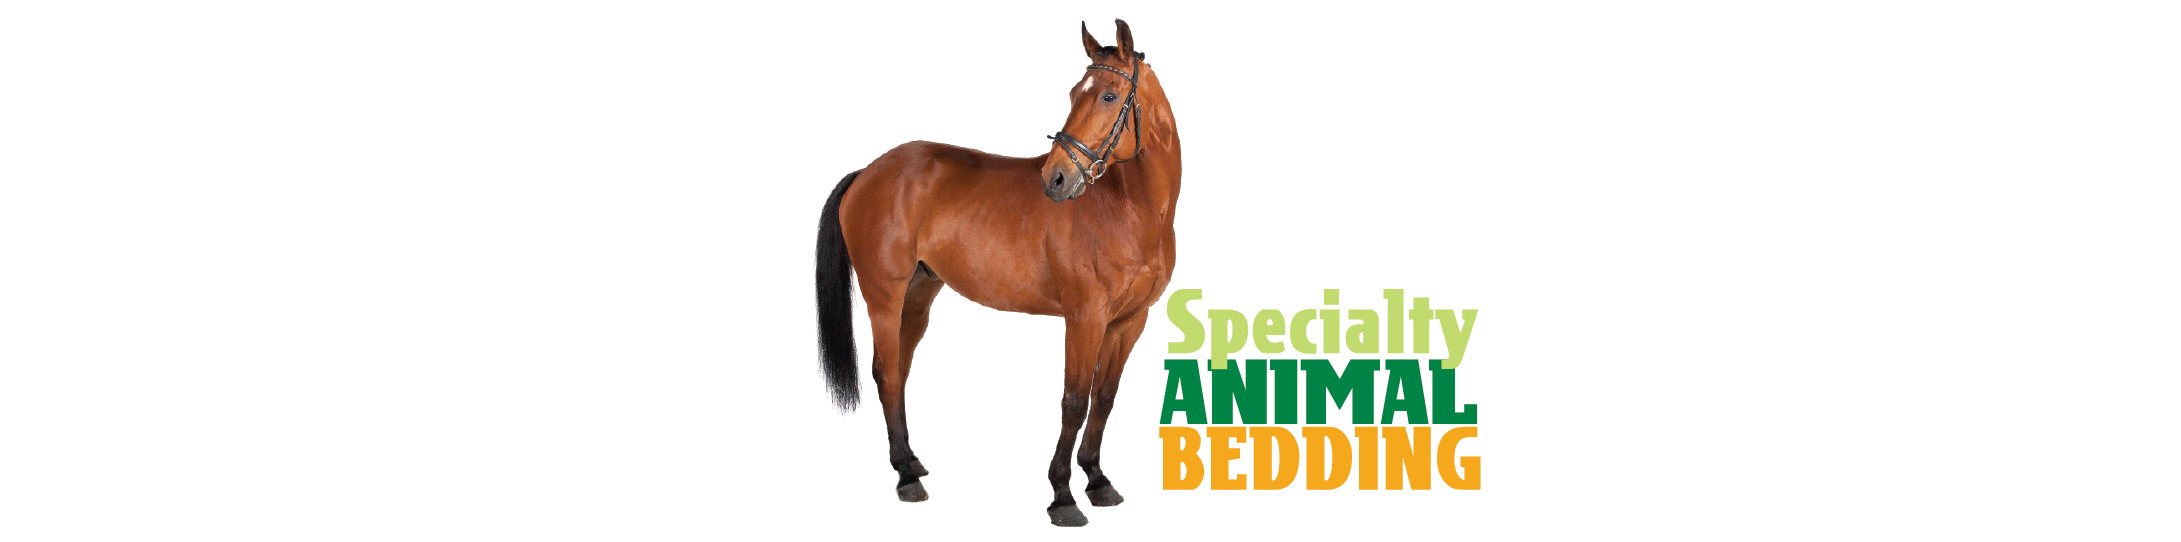 SPECIALTY ANIMAL.png